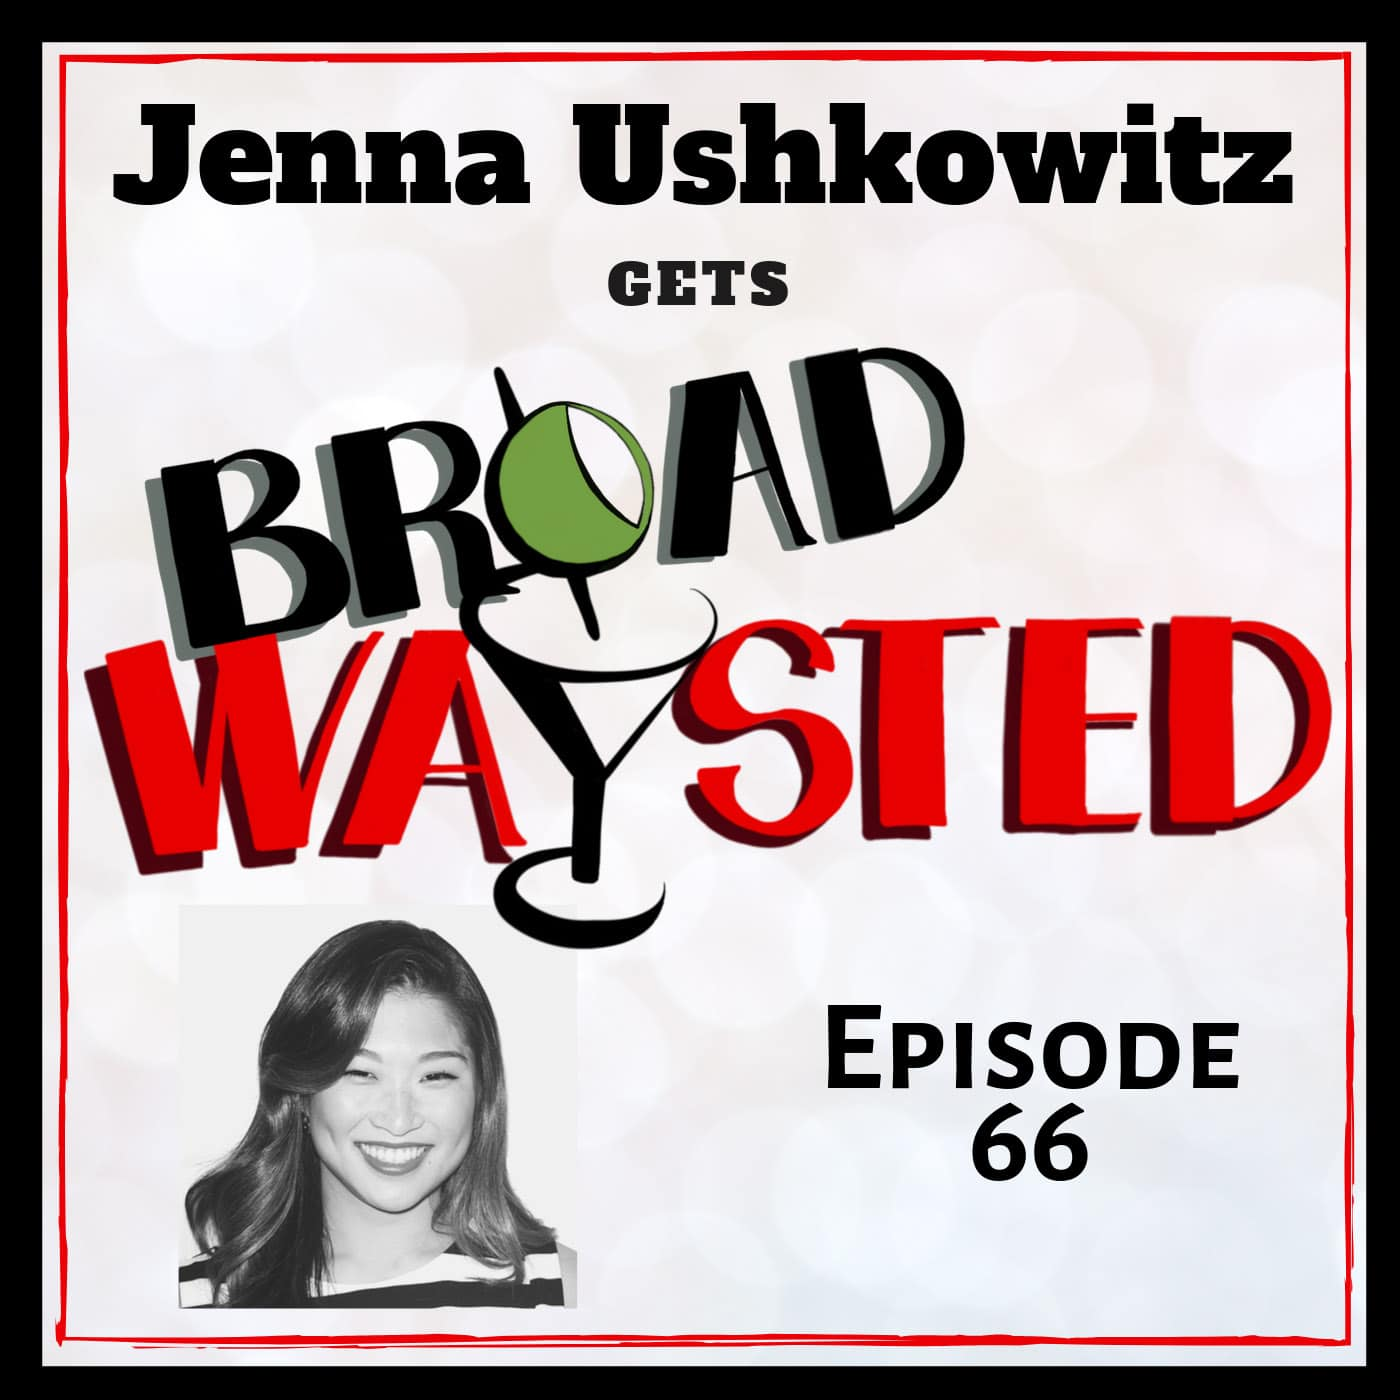 Broadwaysted Ep 66 Jenna Ushkowitz